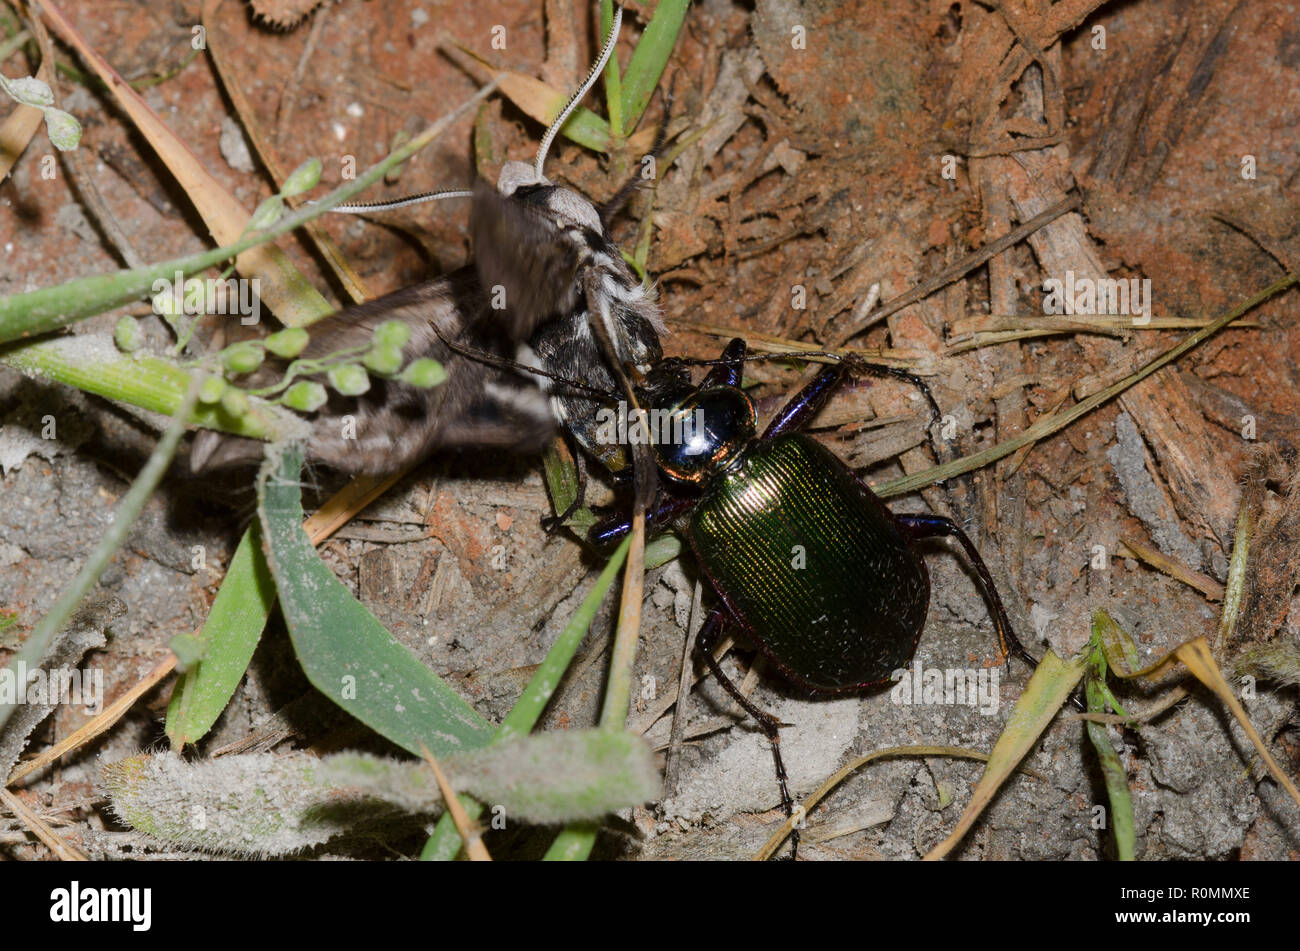 Caterpillar Hunter, Calosoma sp., capturing Vashti Sphinx, Sphinx vashti - Stock Image